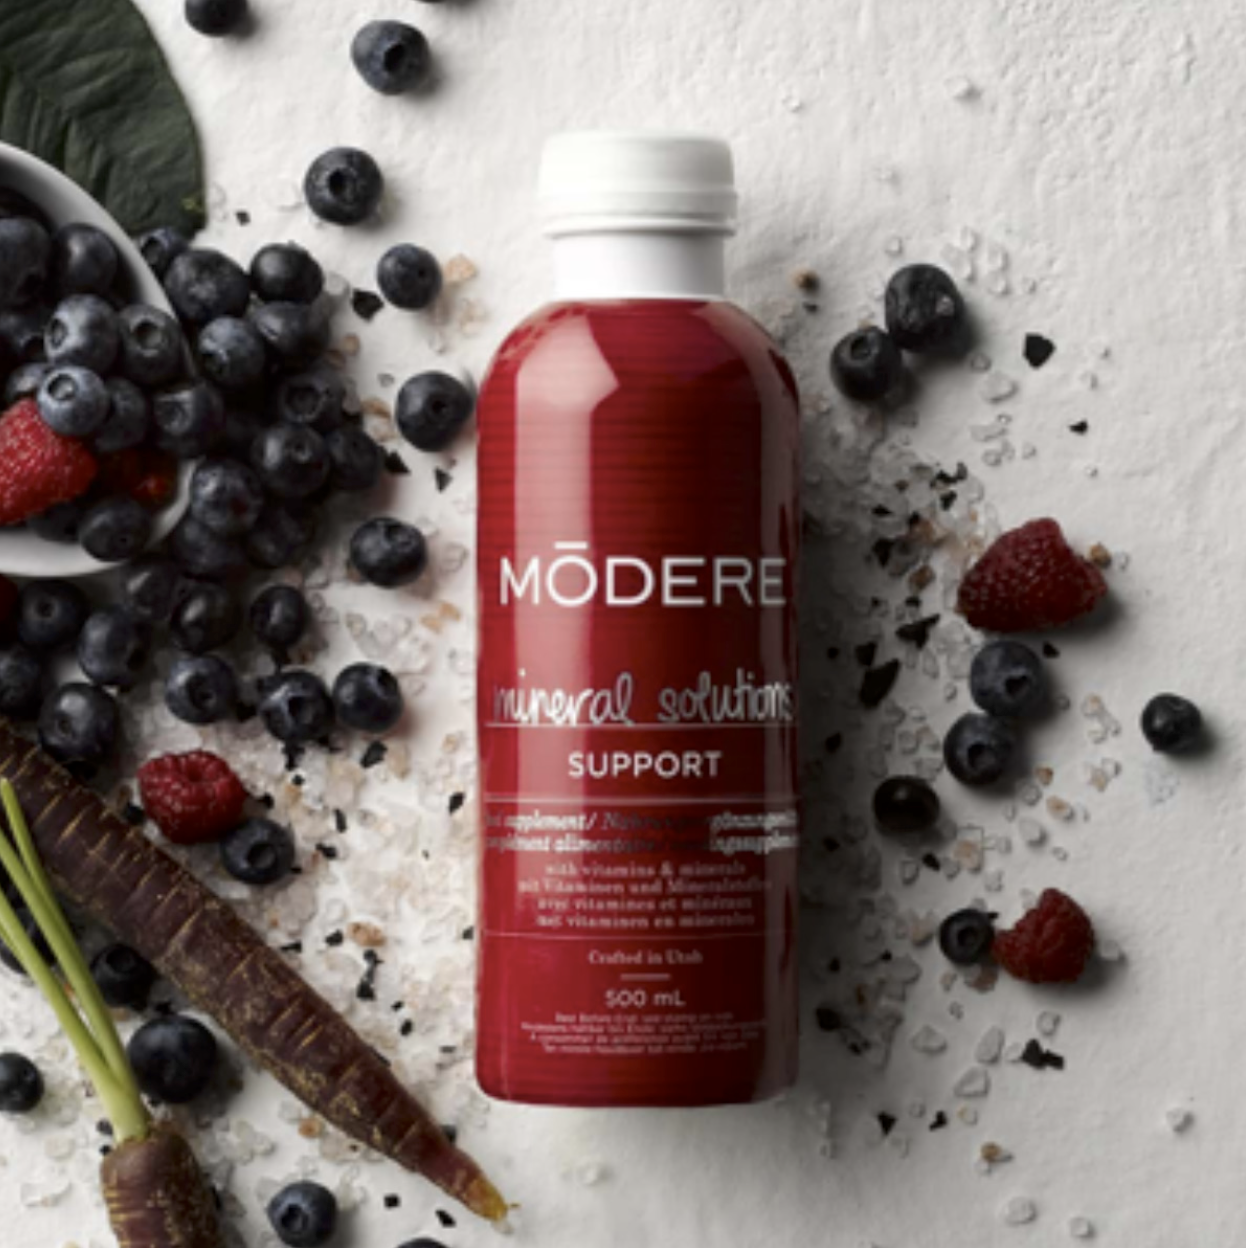 Modere Mineral Solutions -